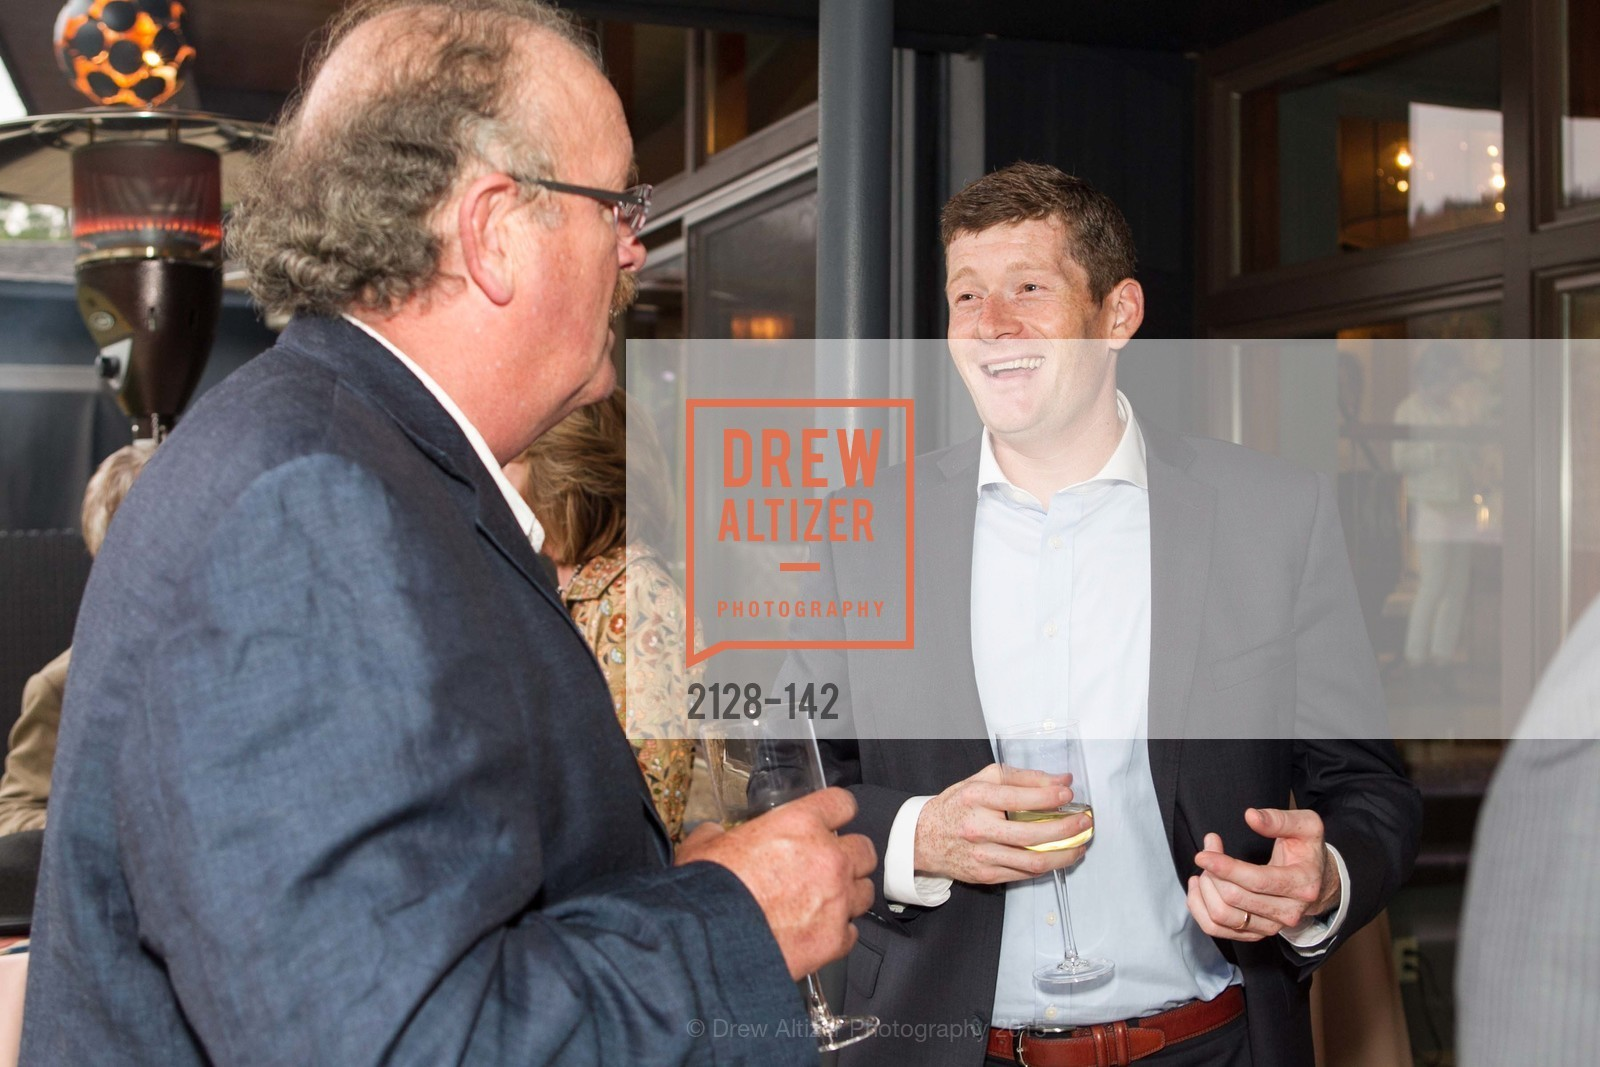 Extras, THE MAN WITHIN book launch with Randolph Churchill, June 2nd, 2015, Photo,Drew Altizer, Drew Altizer Photography, full-service agency, private events, San Francisco photographer, photographer california